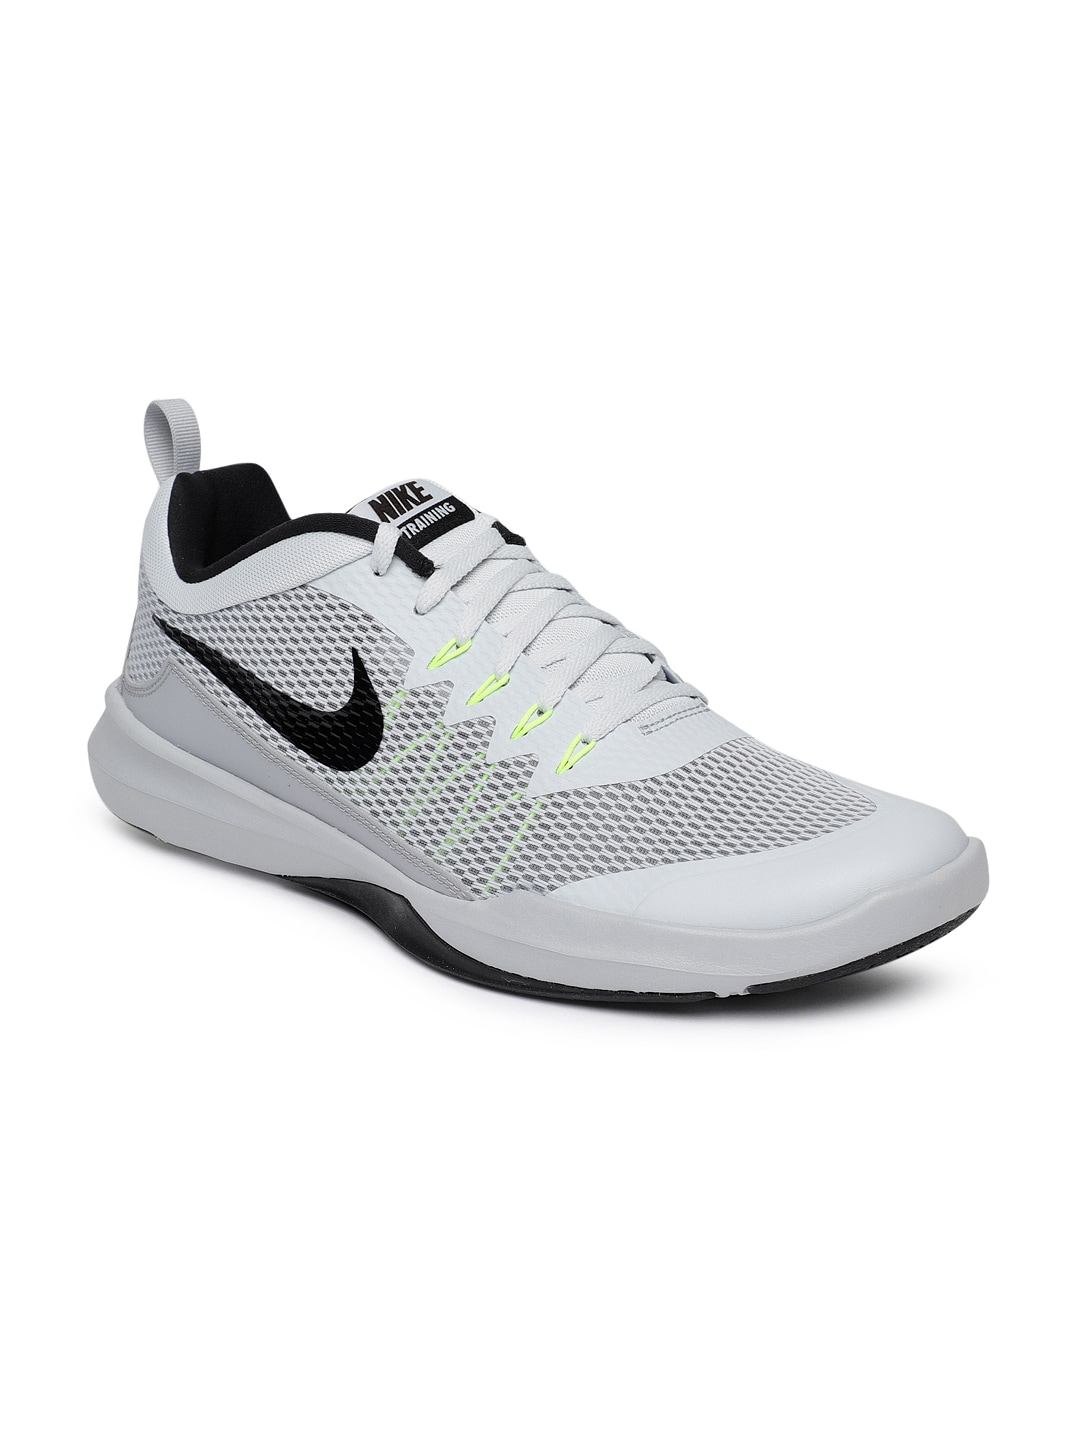 6ed7d15d9525 Nike Shoes - Buy Nike Shoes for Men